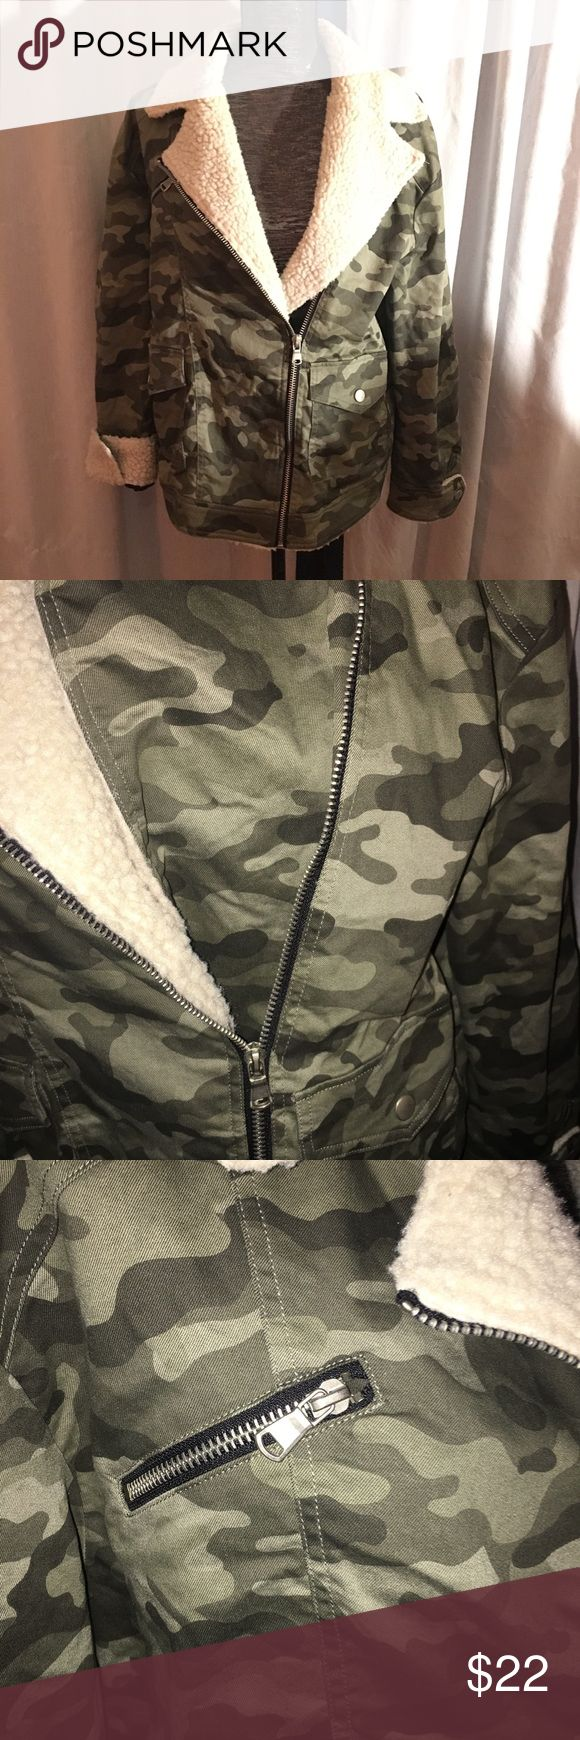 Forever 21 camouflage jacket Fleece trim. Sleeve cuffs can be worn up or down. In excellent condition! Forever 21 Jackets & Coats